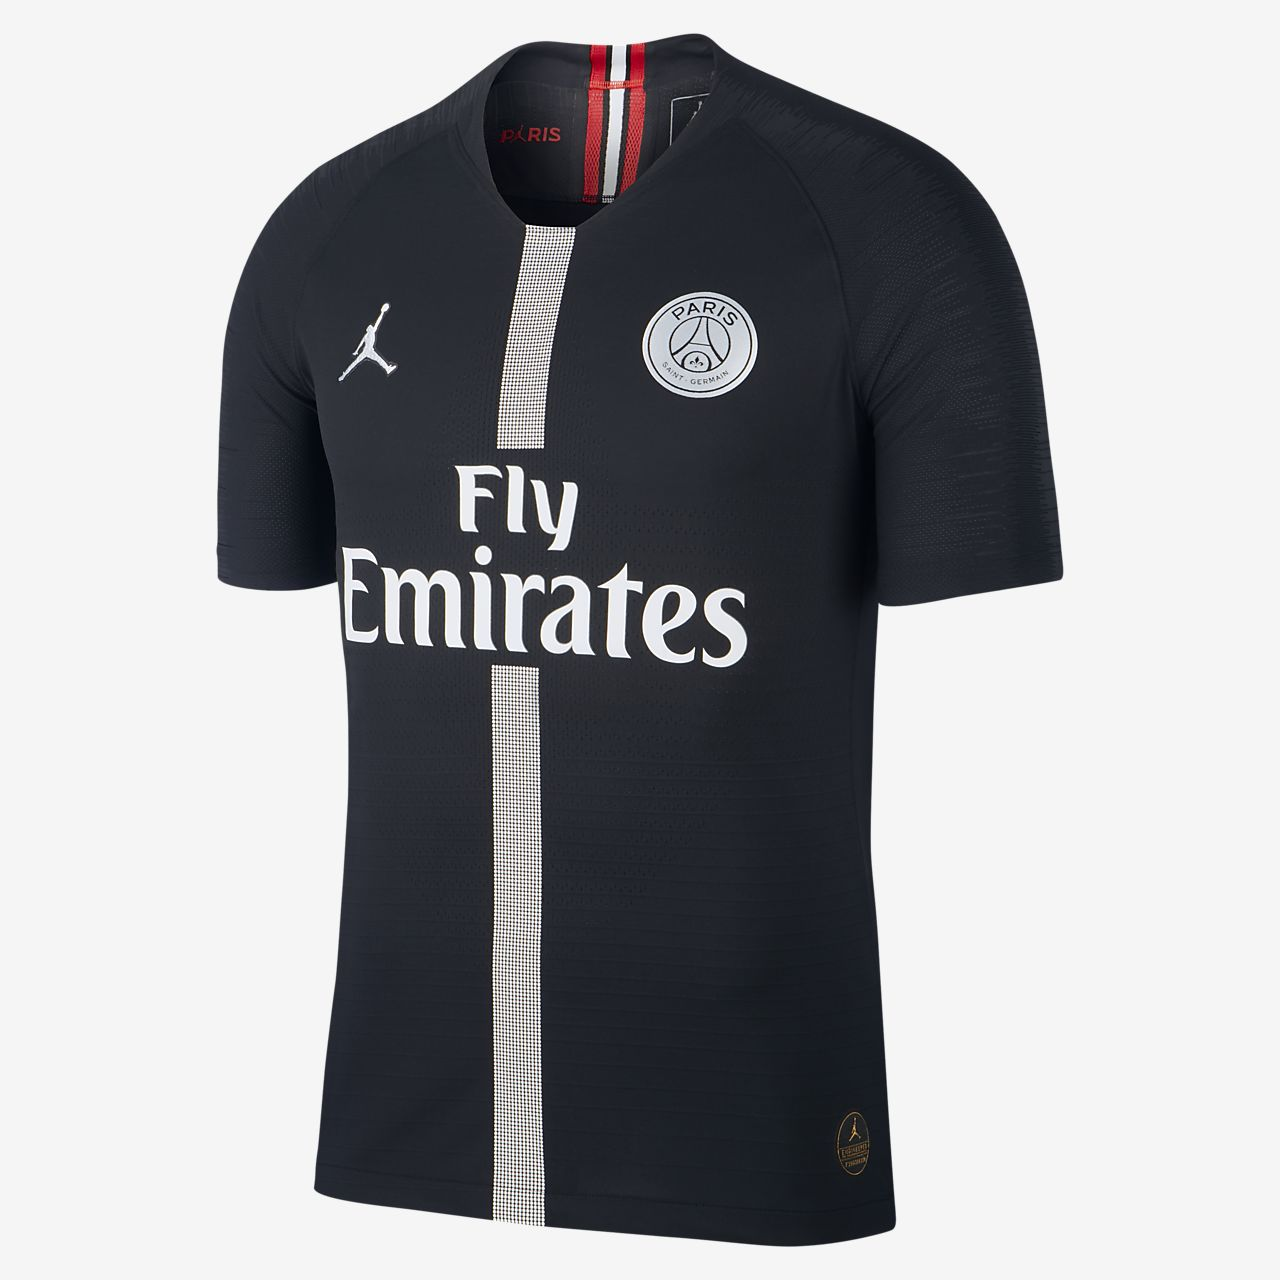 Maillot de football 2018/19 Paris Saint-Germain Vapor Match Third pour Homme